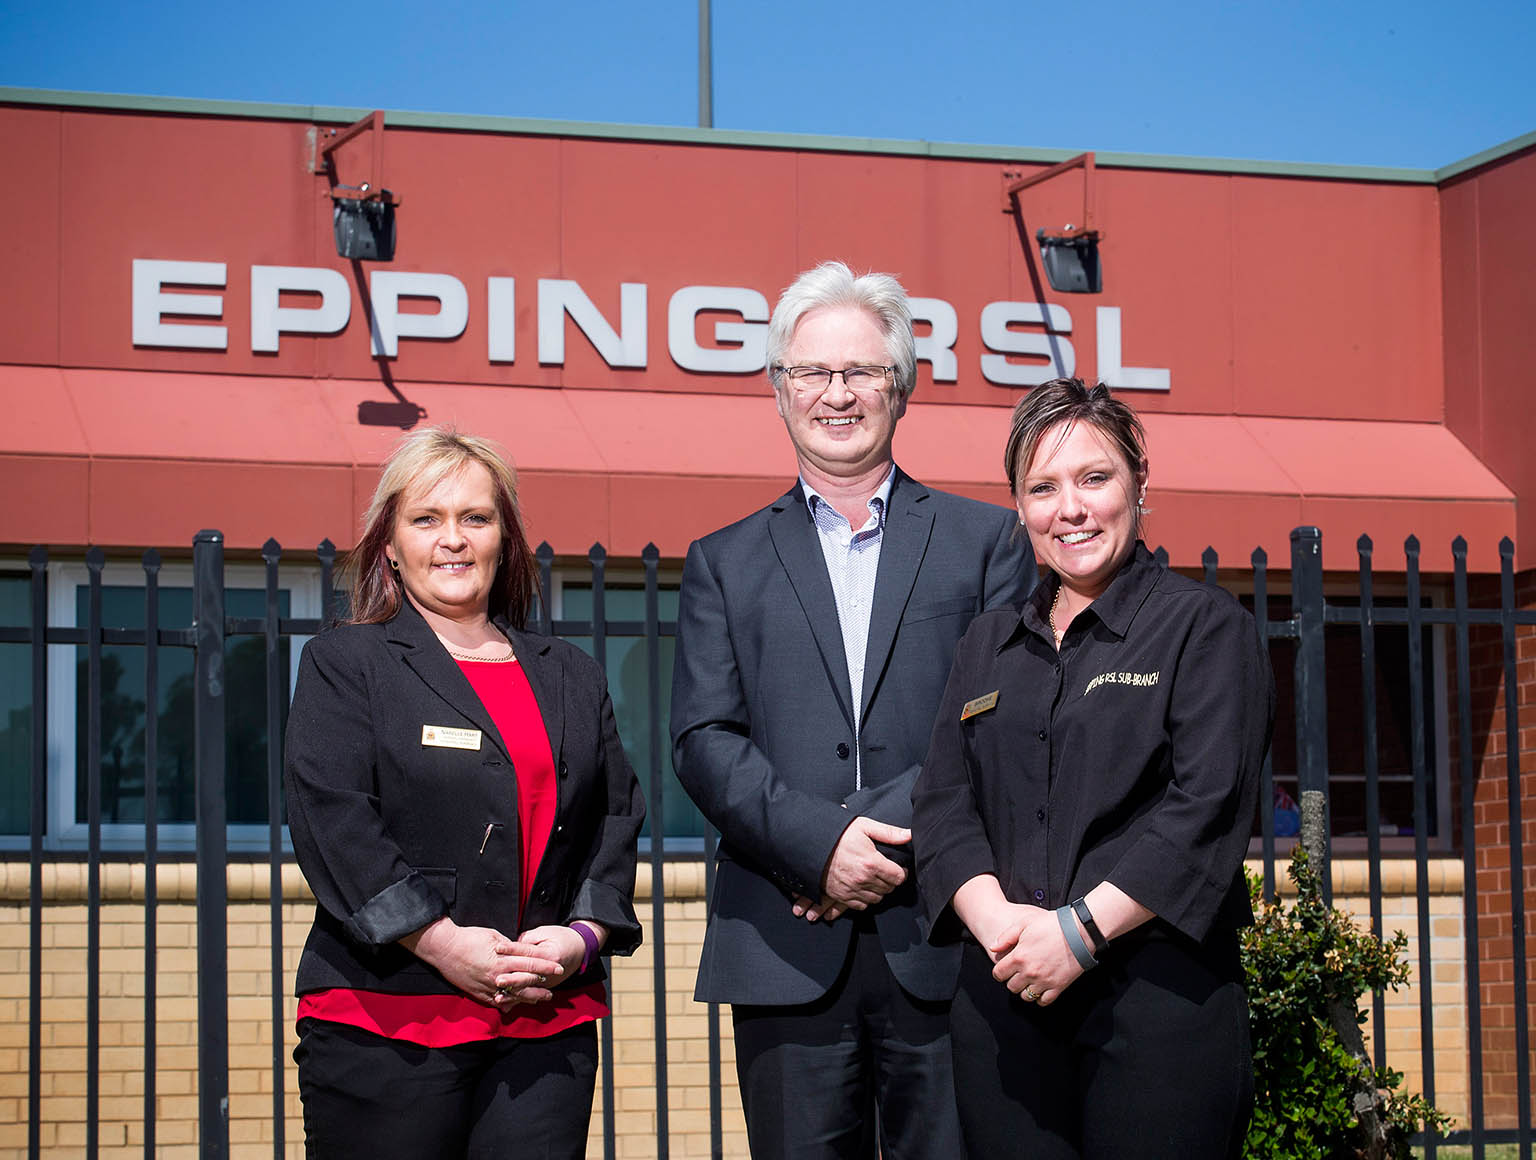 Two women and a man standing in front of building with an Epping RSL sign